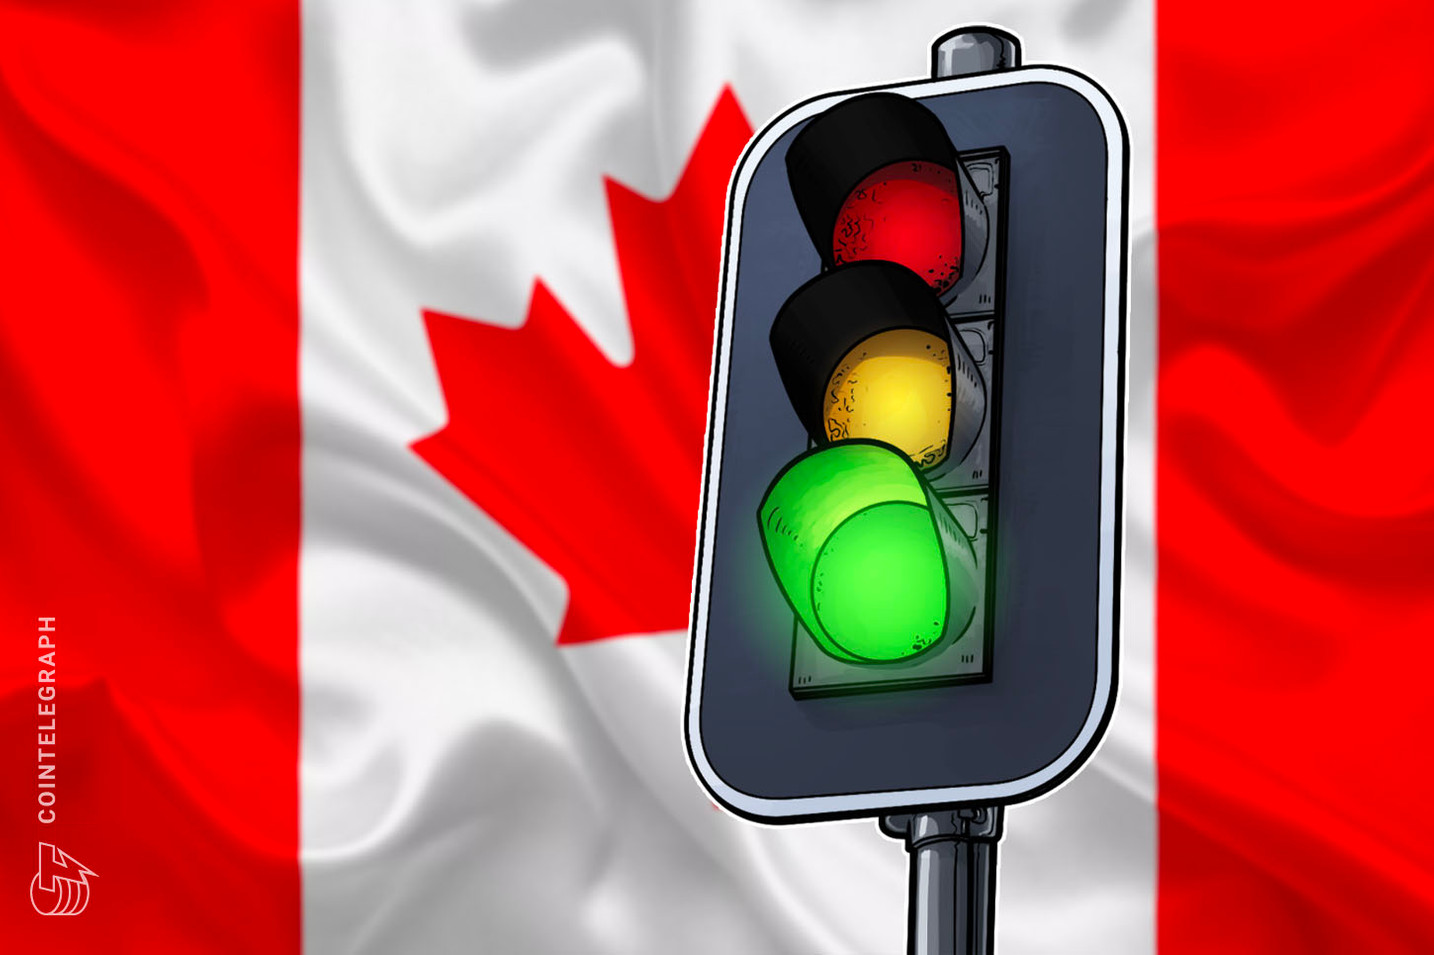 Canadian Markets Regulator Gives 3iQ Green Light to Offer Bitcoin Fund